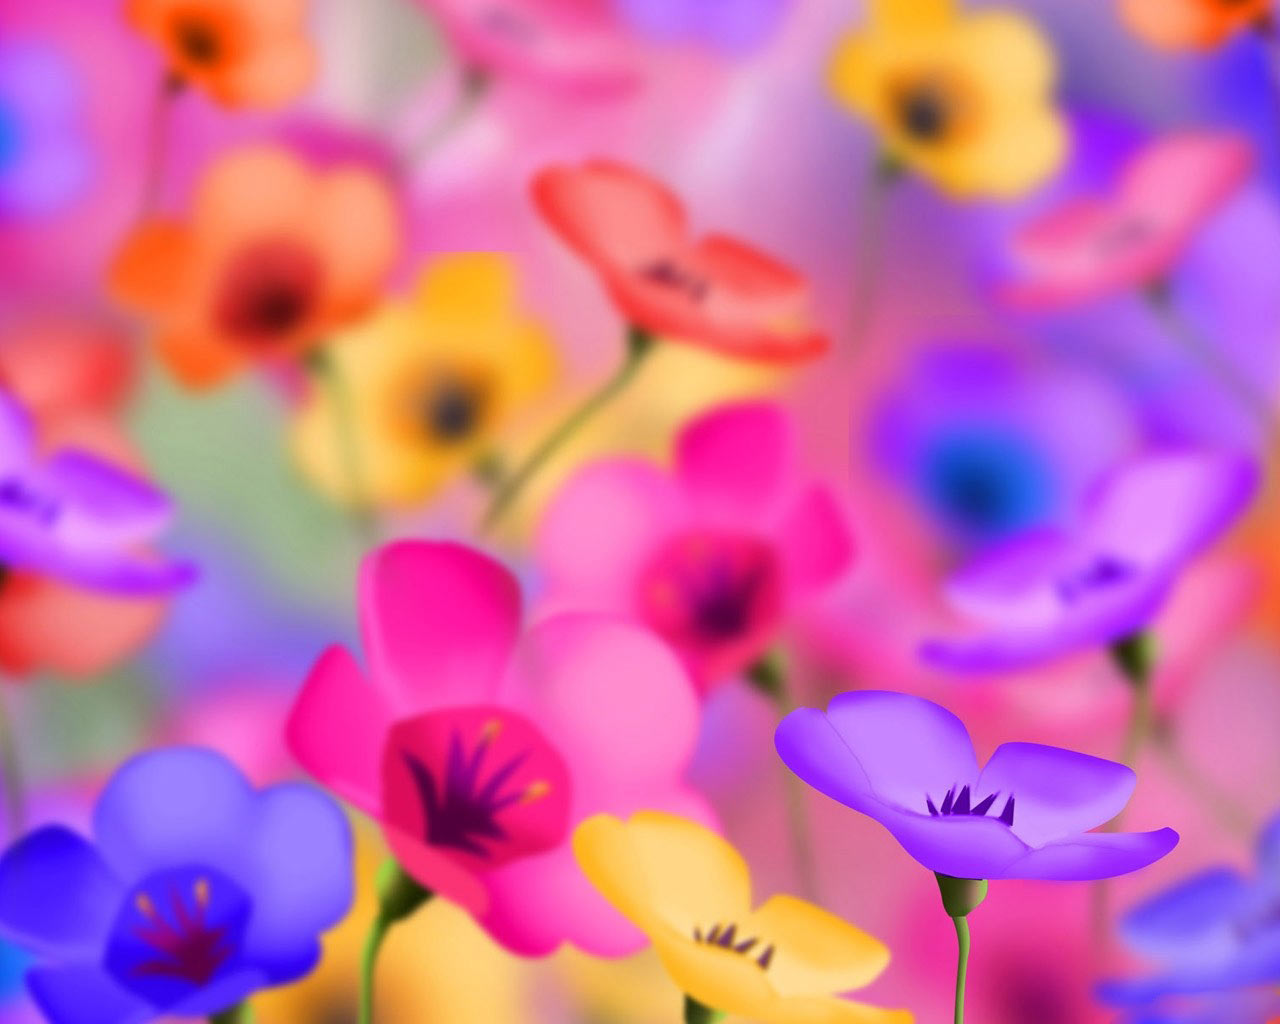 flowers for flower lovers Desktop background flowers